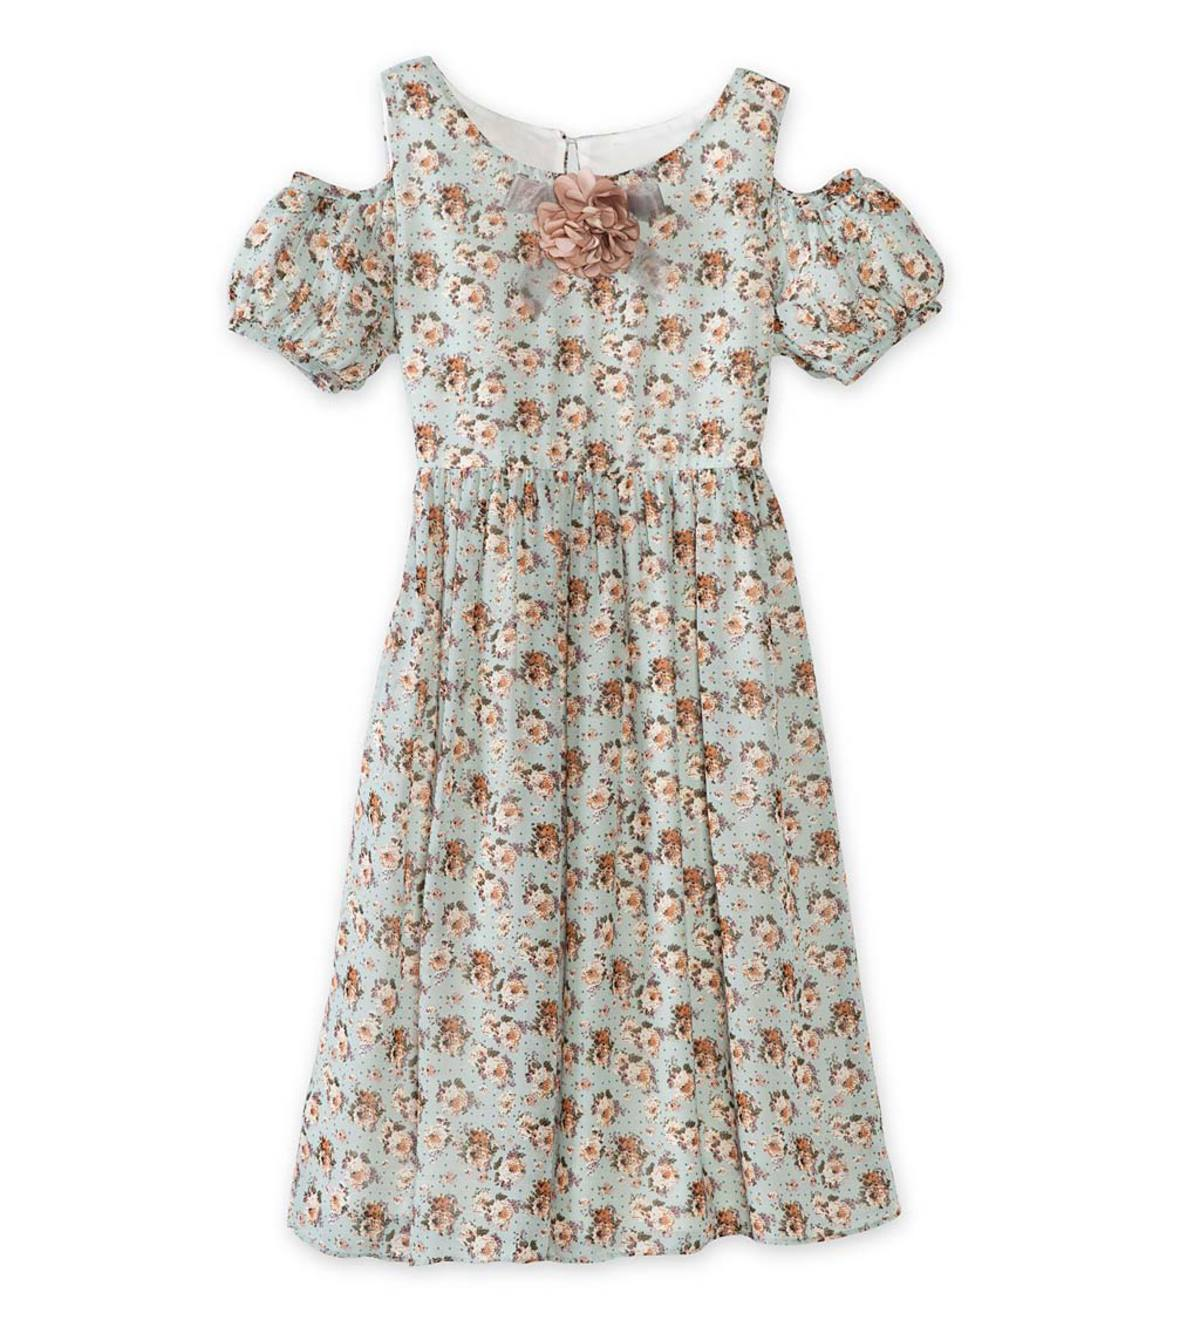 Short-Sleeve Open-Shoulder Floral Dress